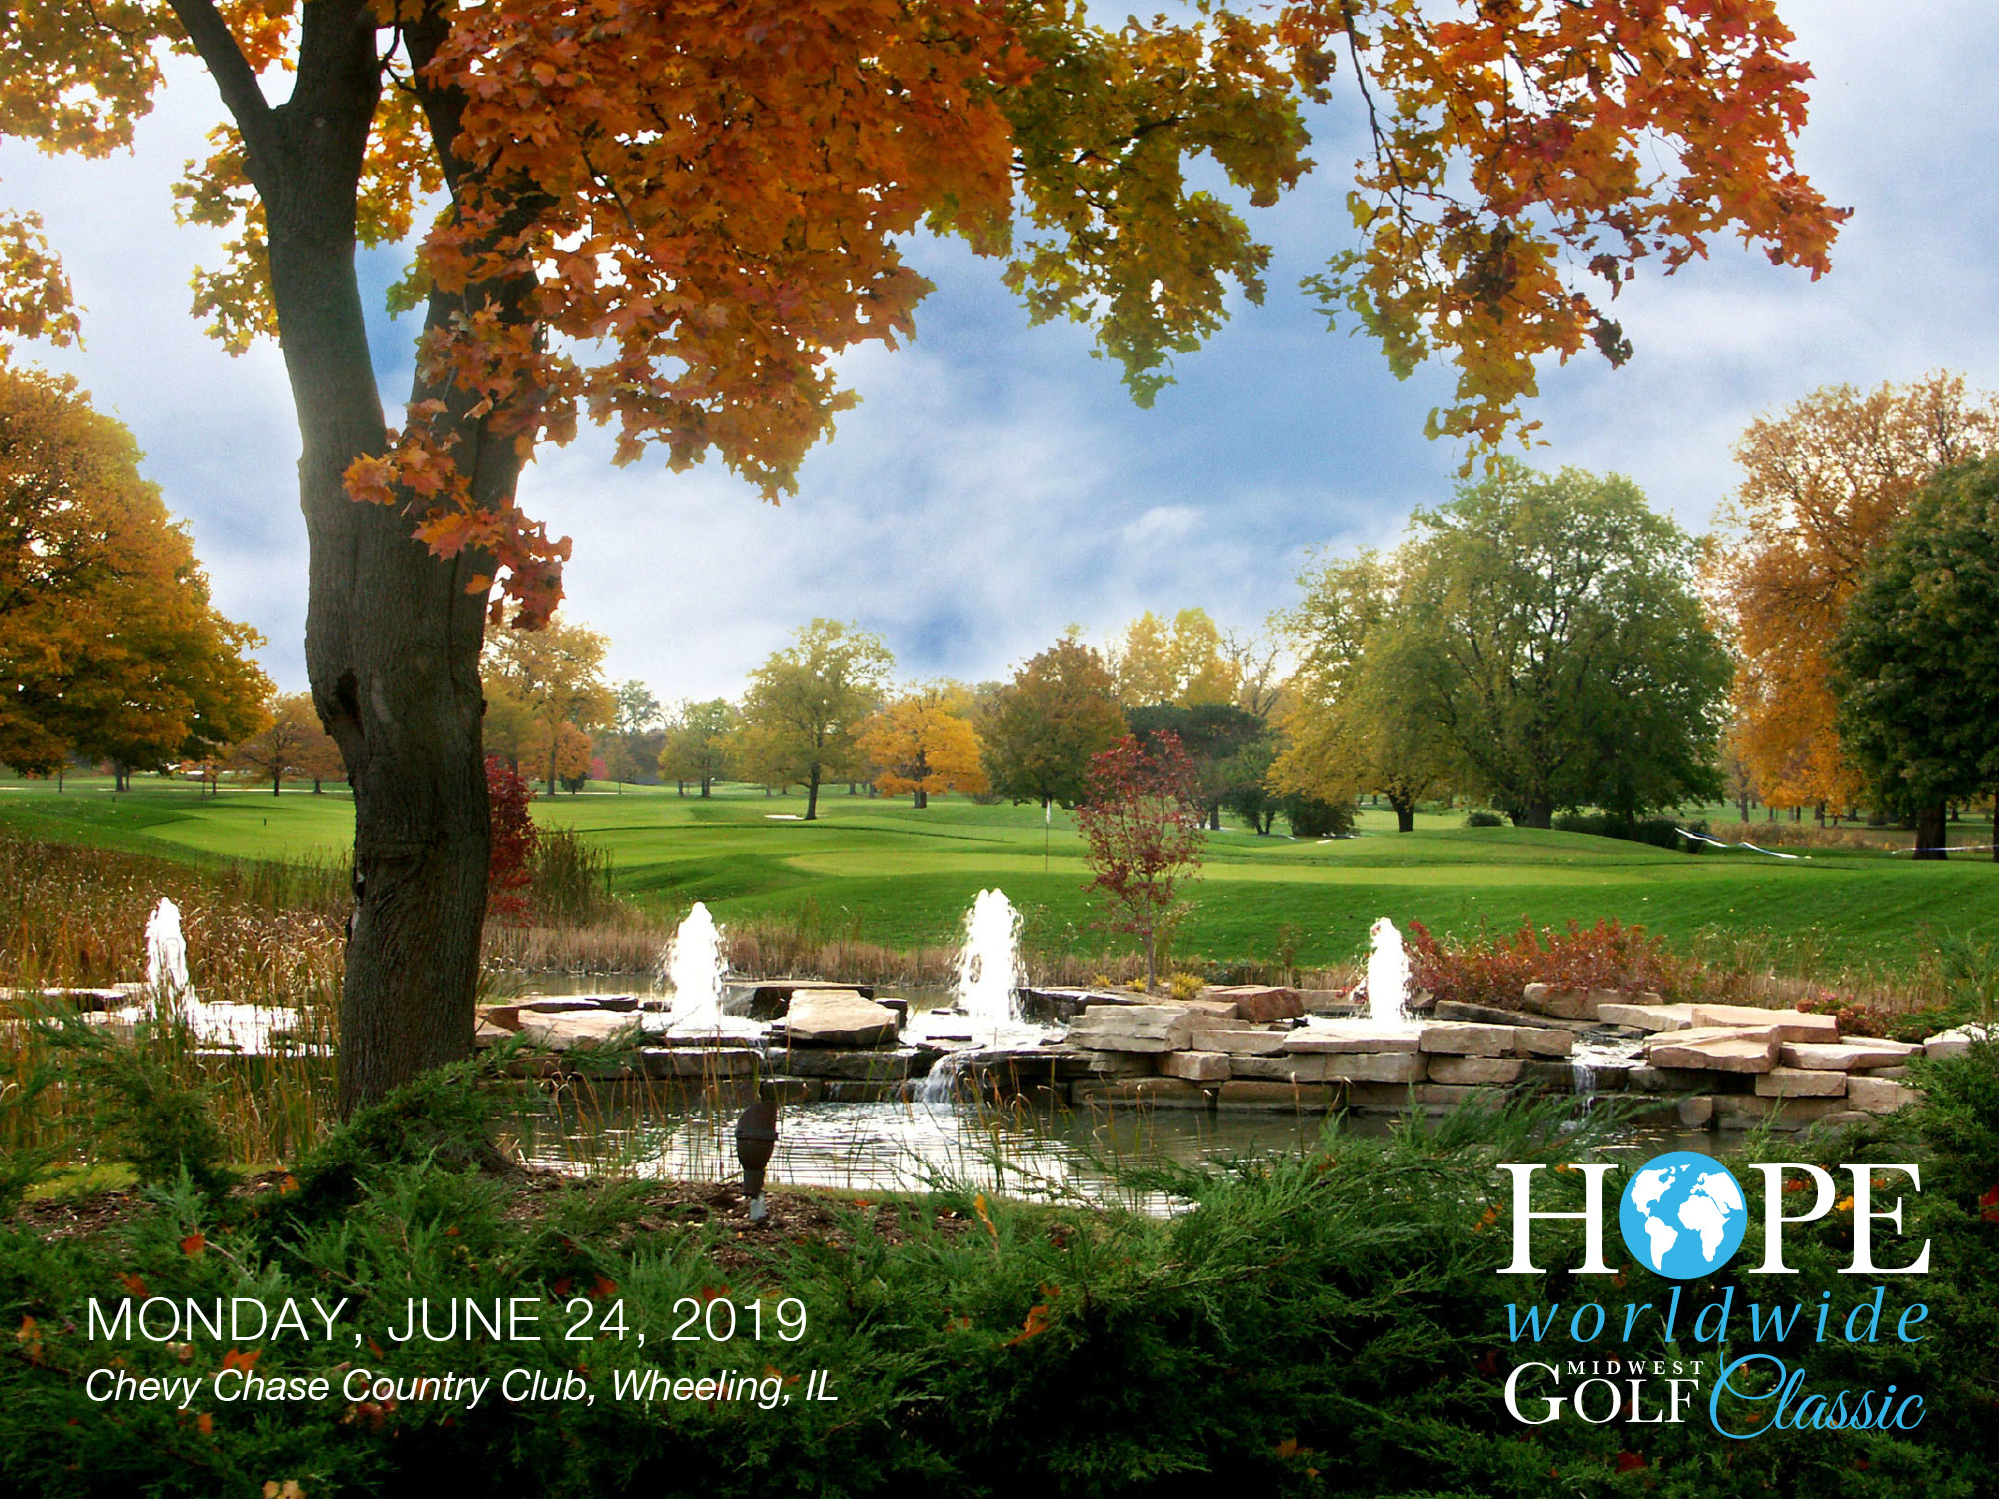 More information at this link:  https://www.chicagochurch.org/event/hope-golf-classic/